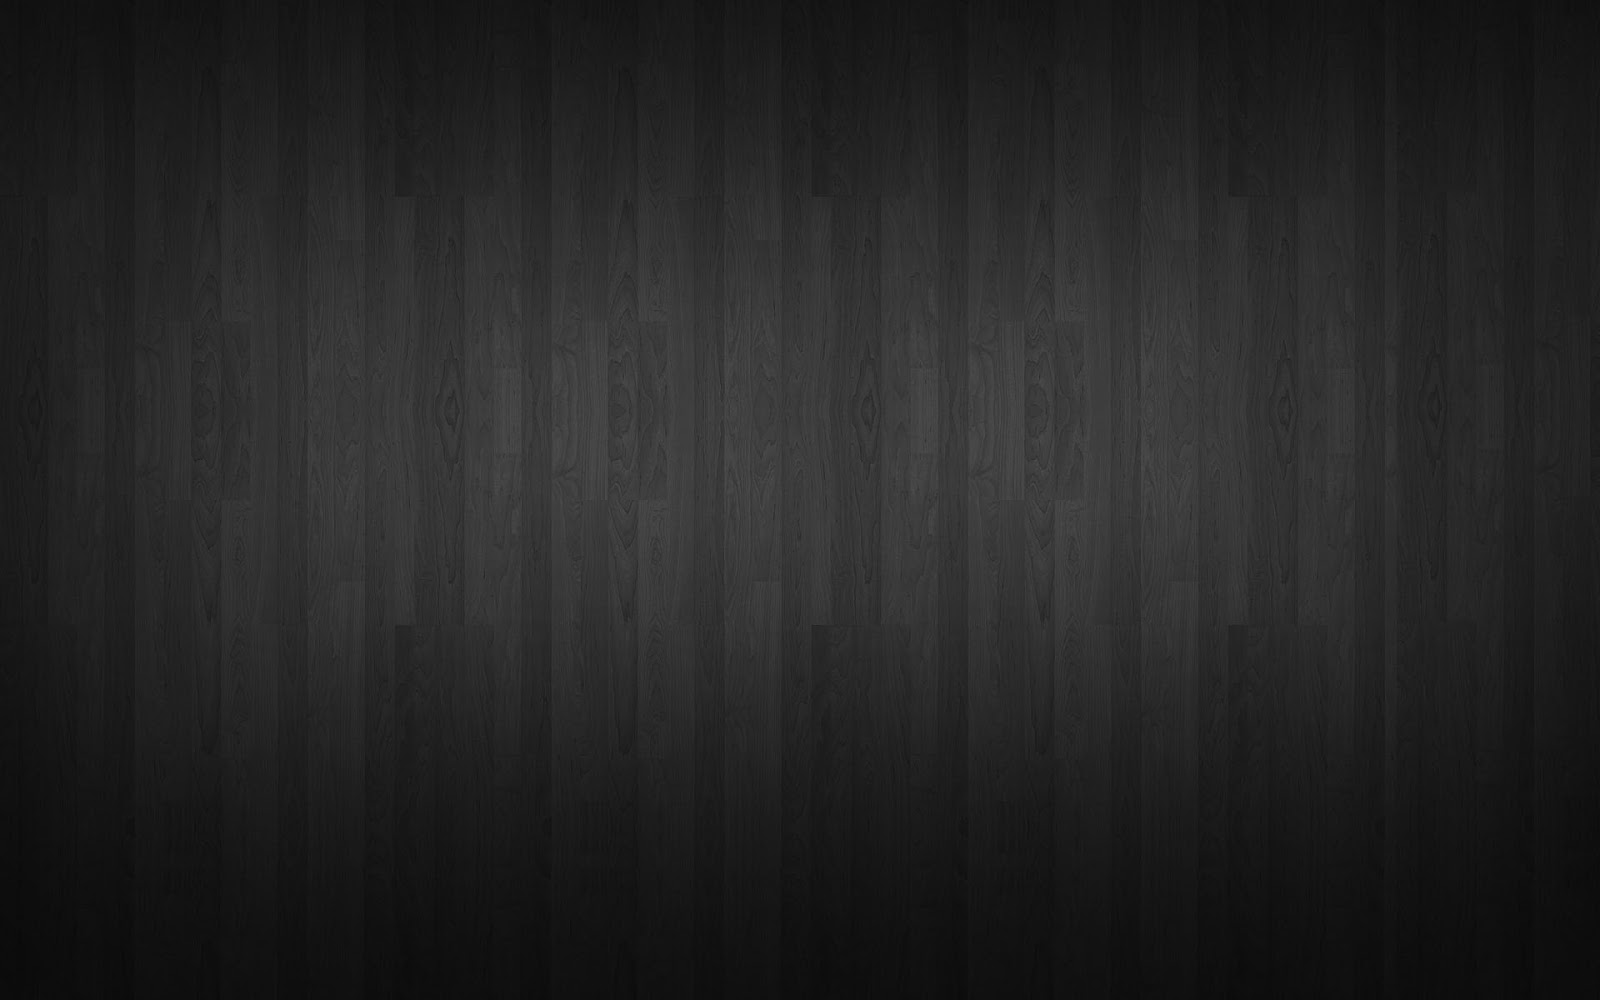 Background Poster Pics: Background Picture Html